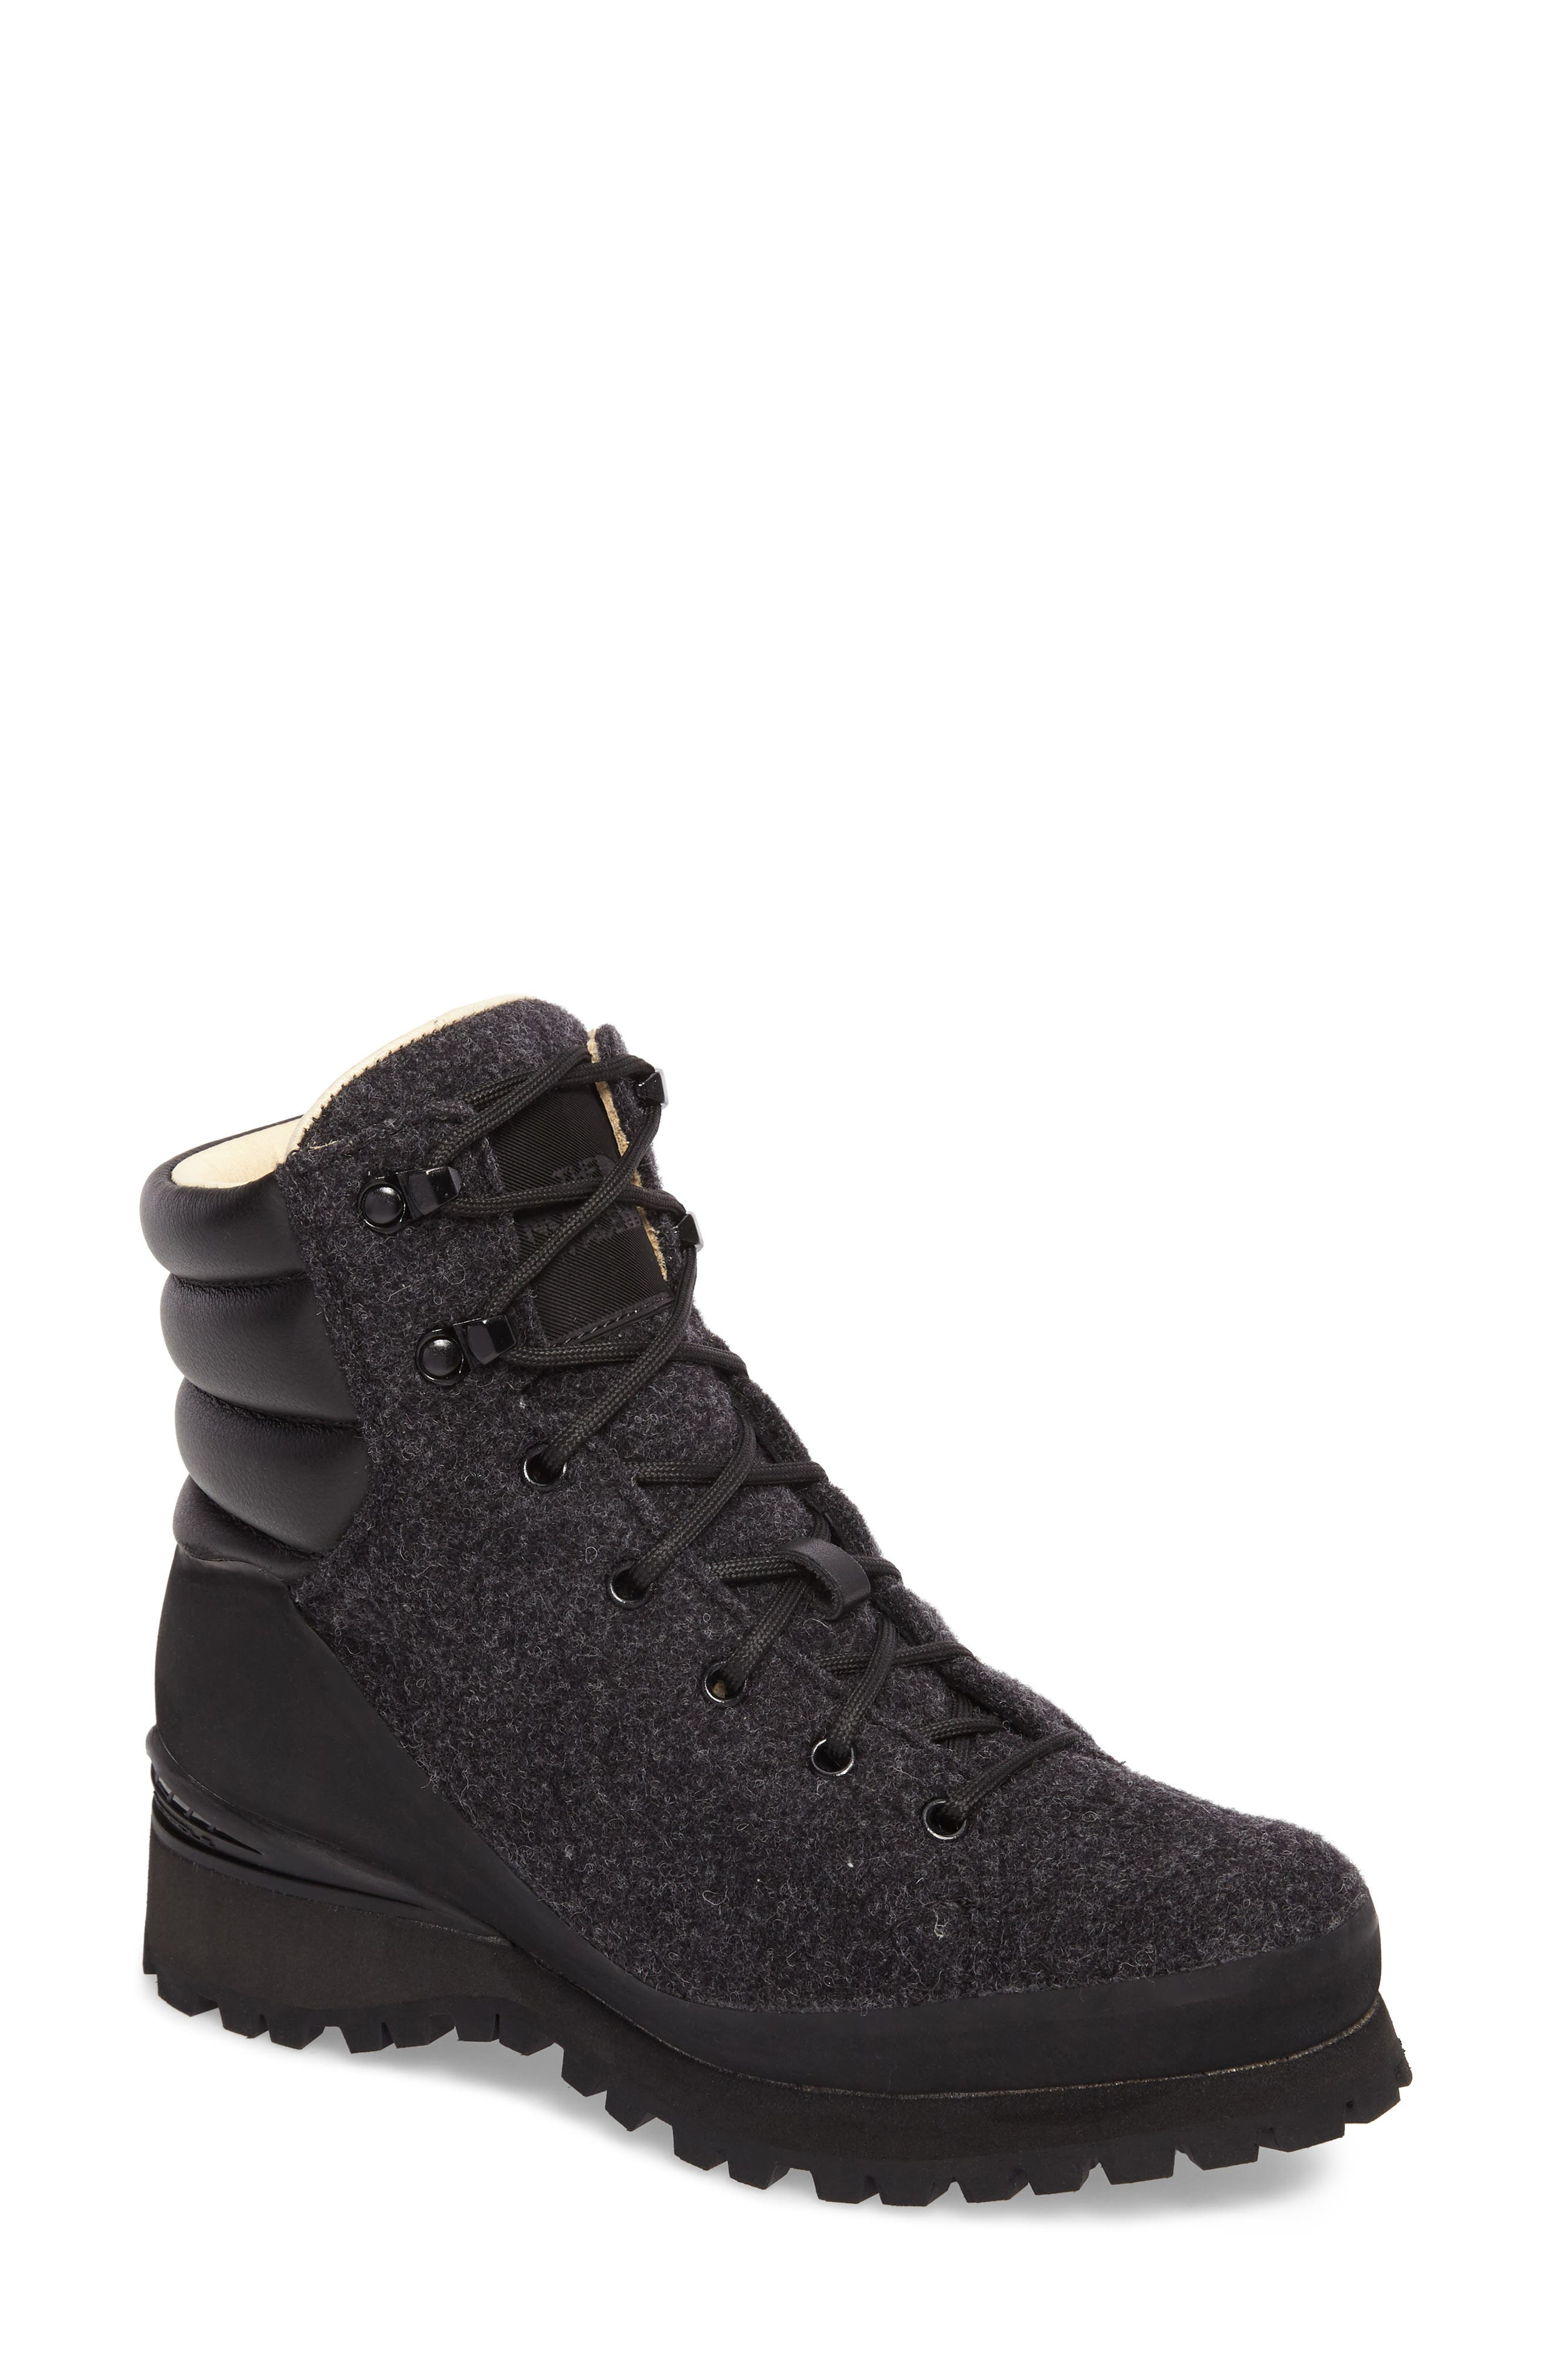 Cryos Hiker Boot,                         Main,                         color, Tnf Black/ Tnf Black